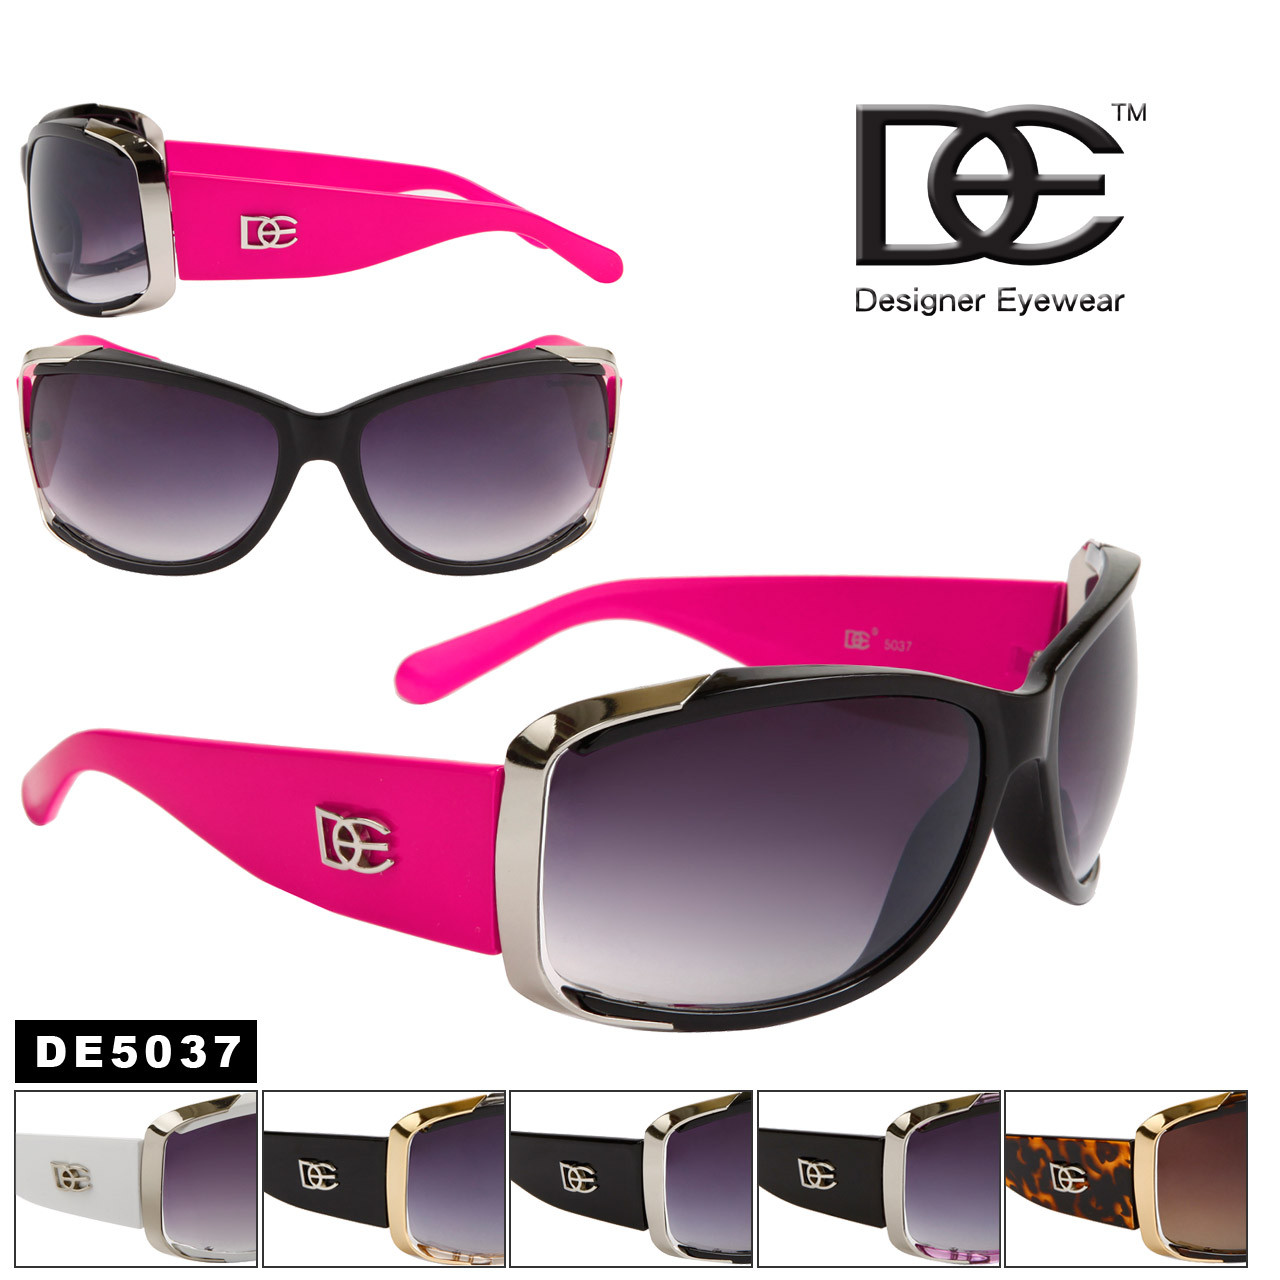 Wholesale Women's Designer Sunglasses - DE5037